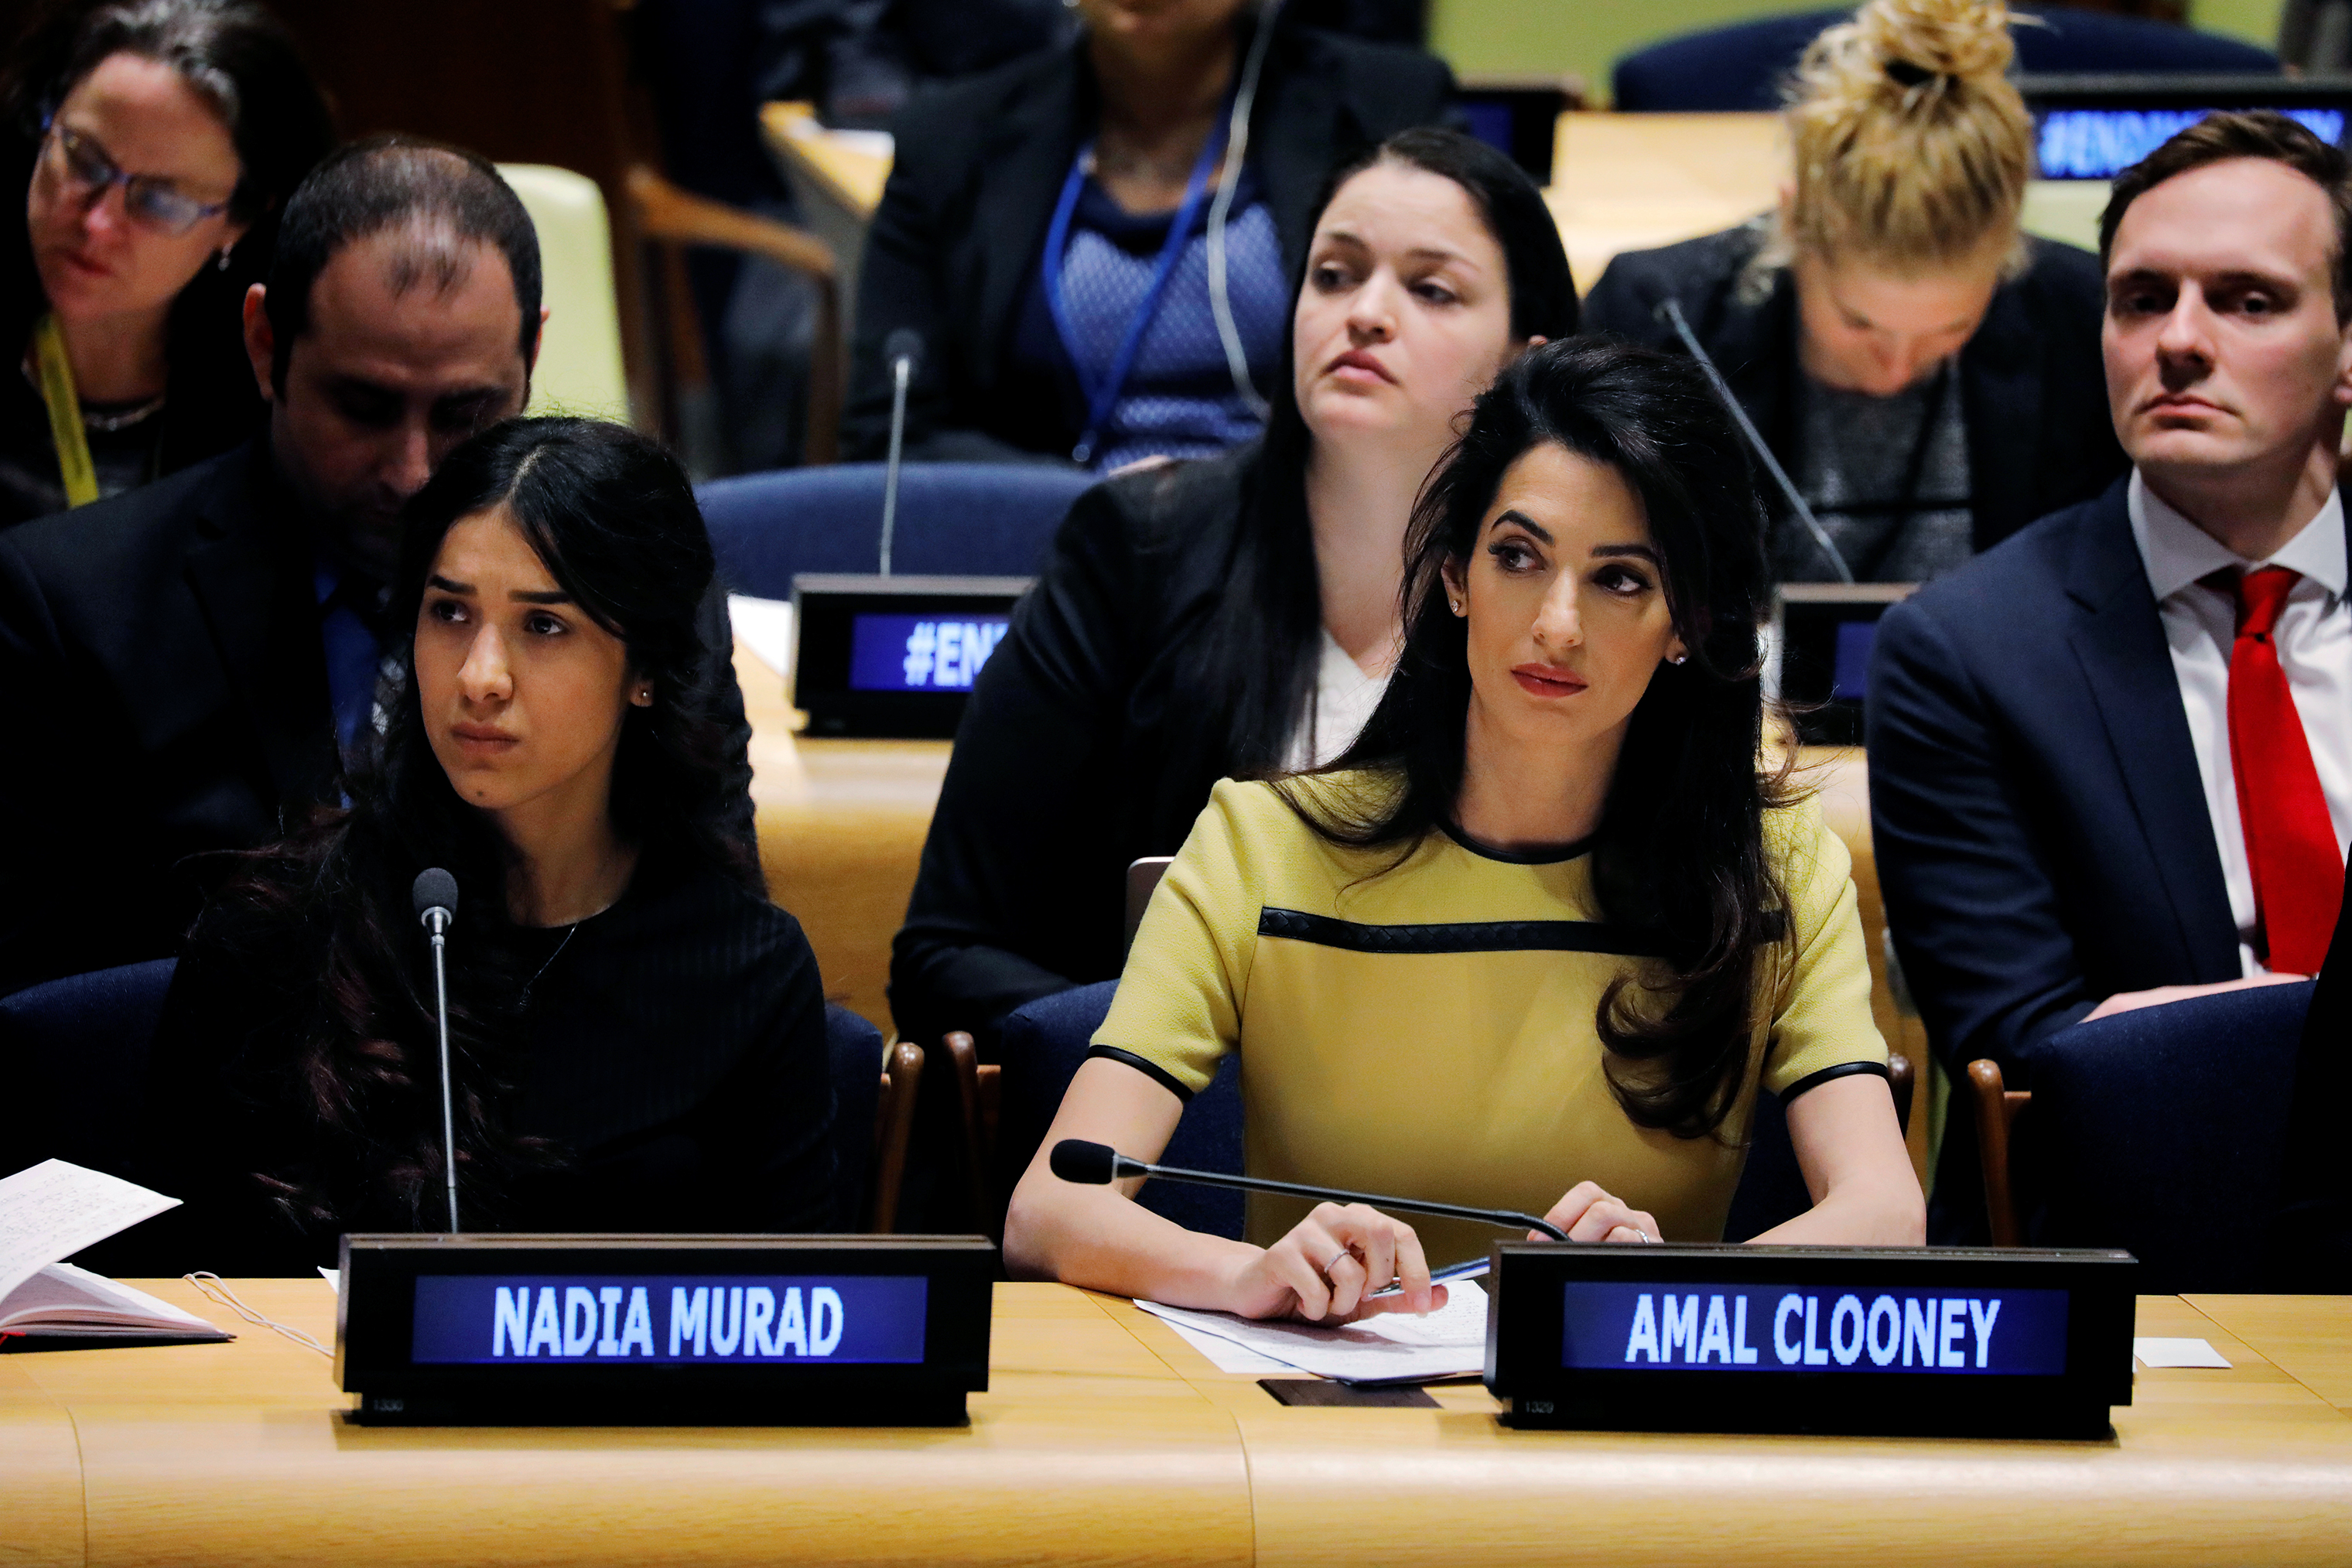 International human rights lawyer Amal Clooney sits with Murad as she waits to address a  Bringing Da'esh to Justice  event at the United Nations headquarters in New York on March 9, 2017.